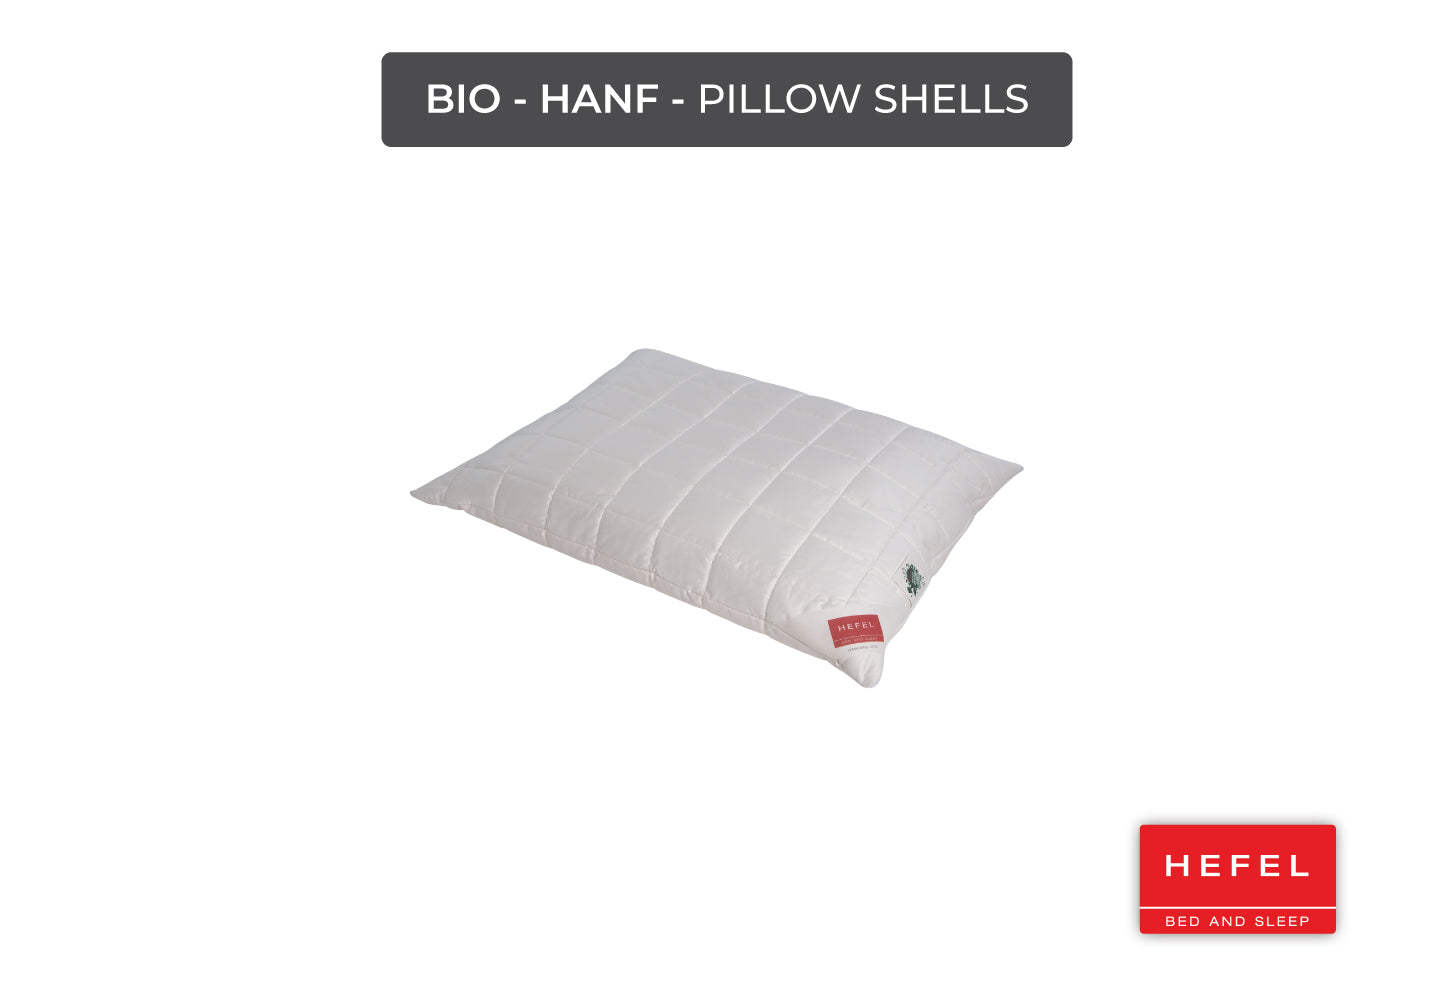 Bio - Hanf - Pillow Shells